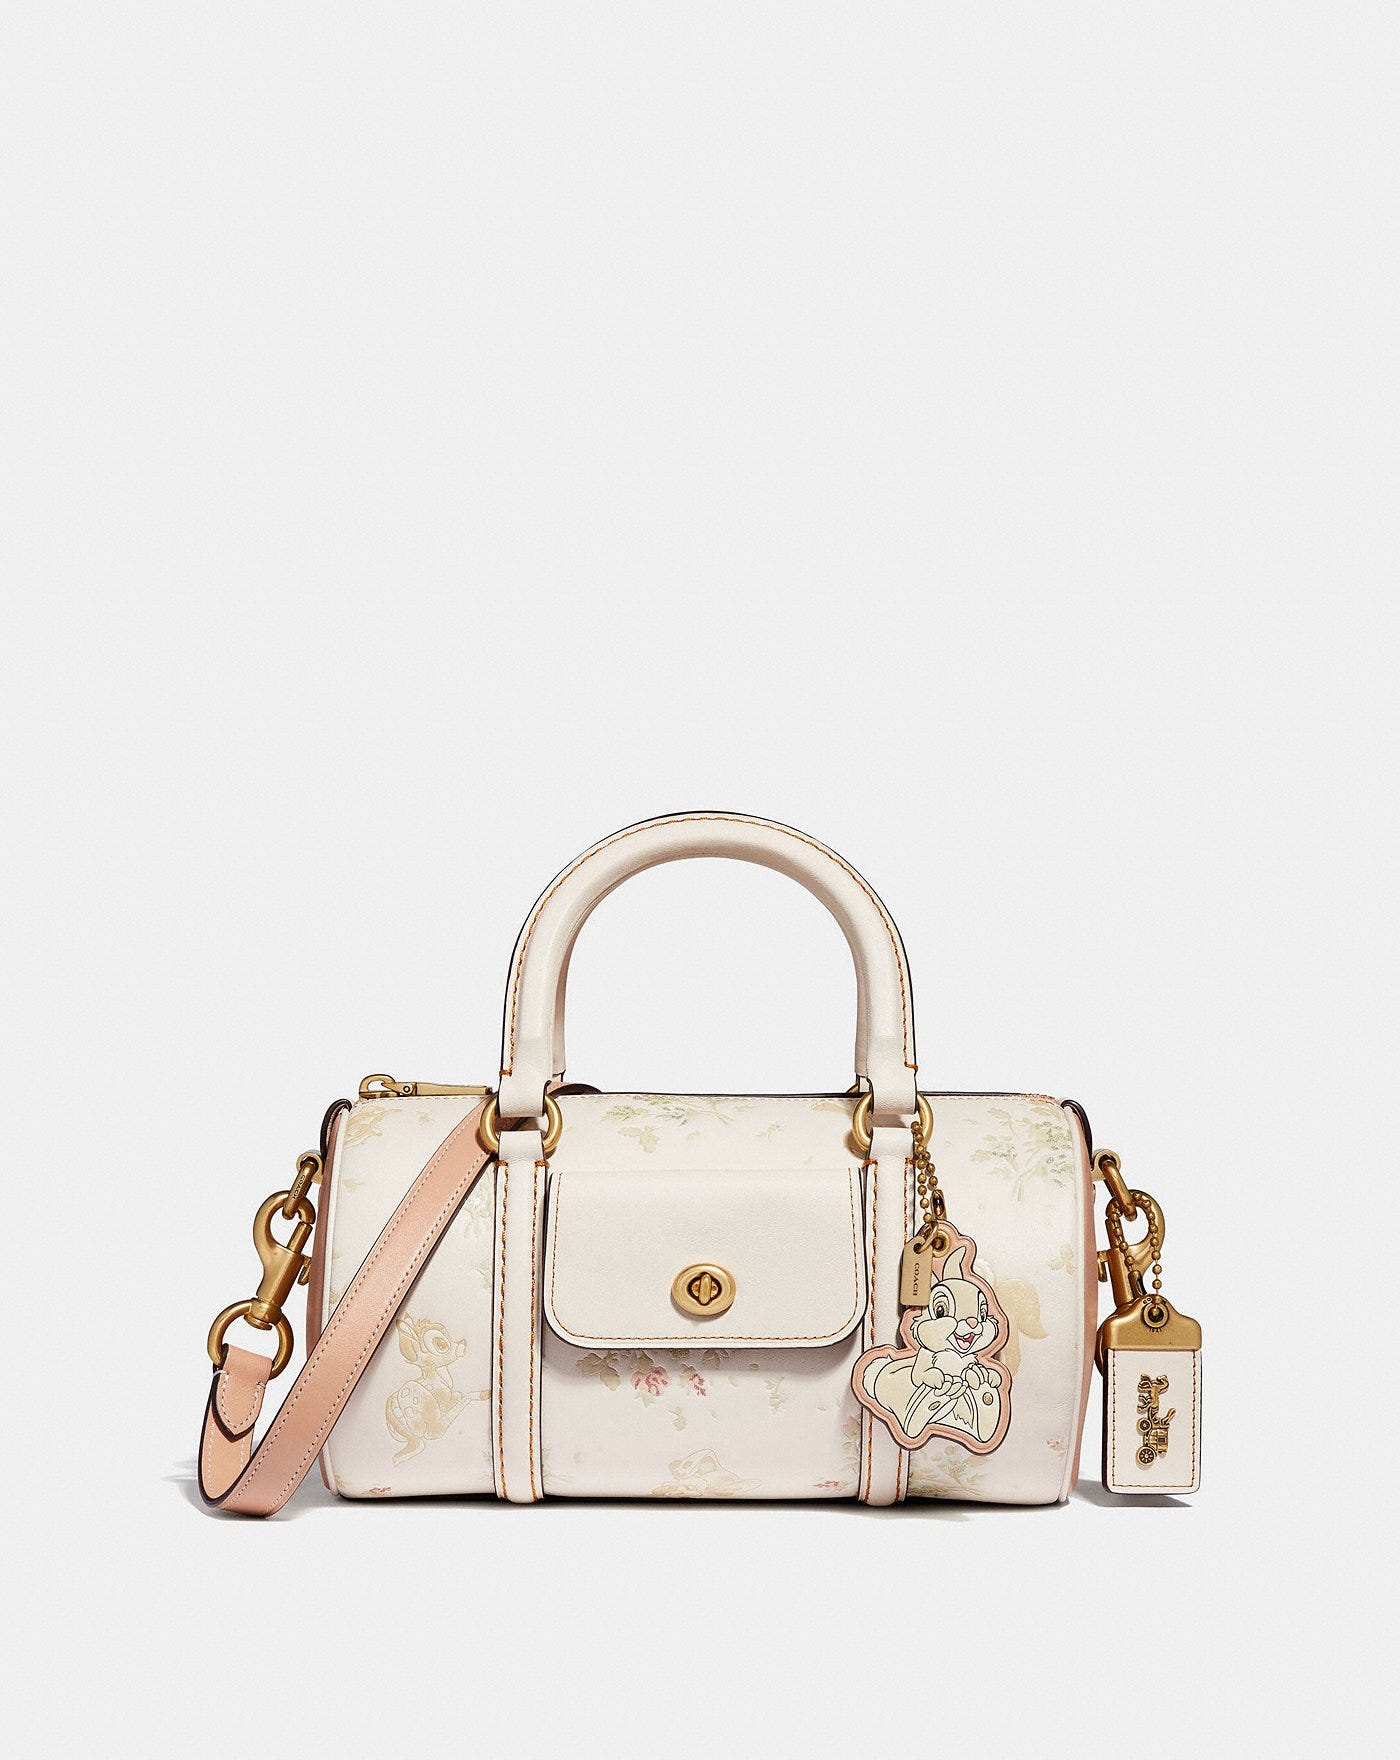 99ddd1e3017c Coach x Disney Fashion Week Collection Available To Buy